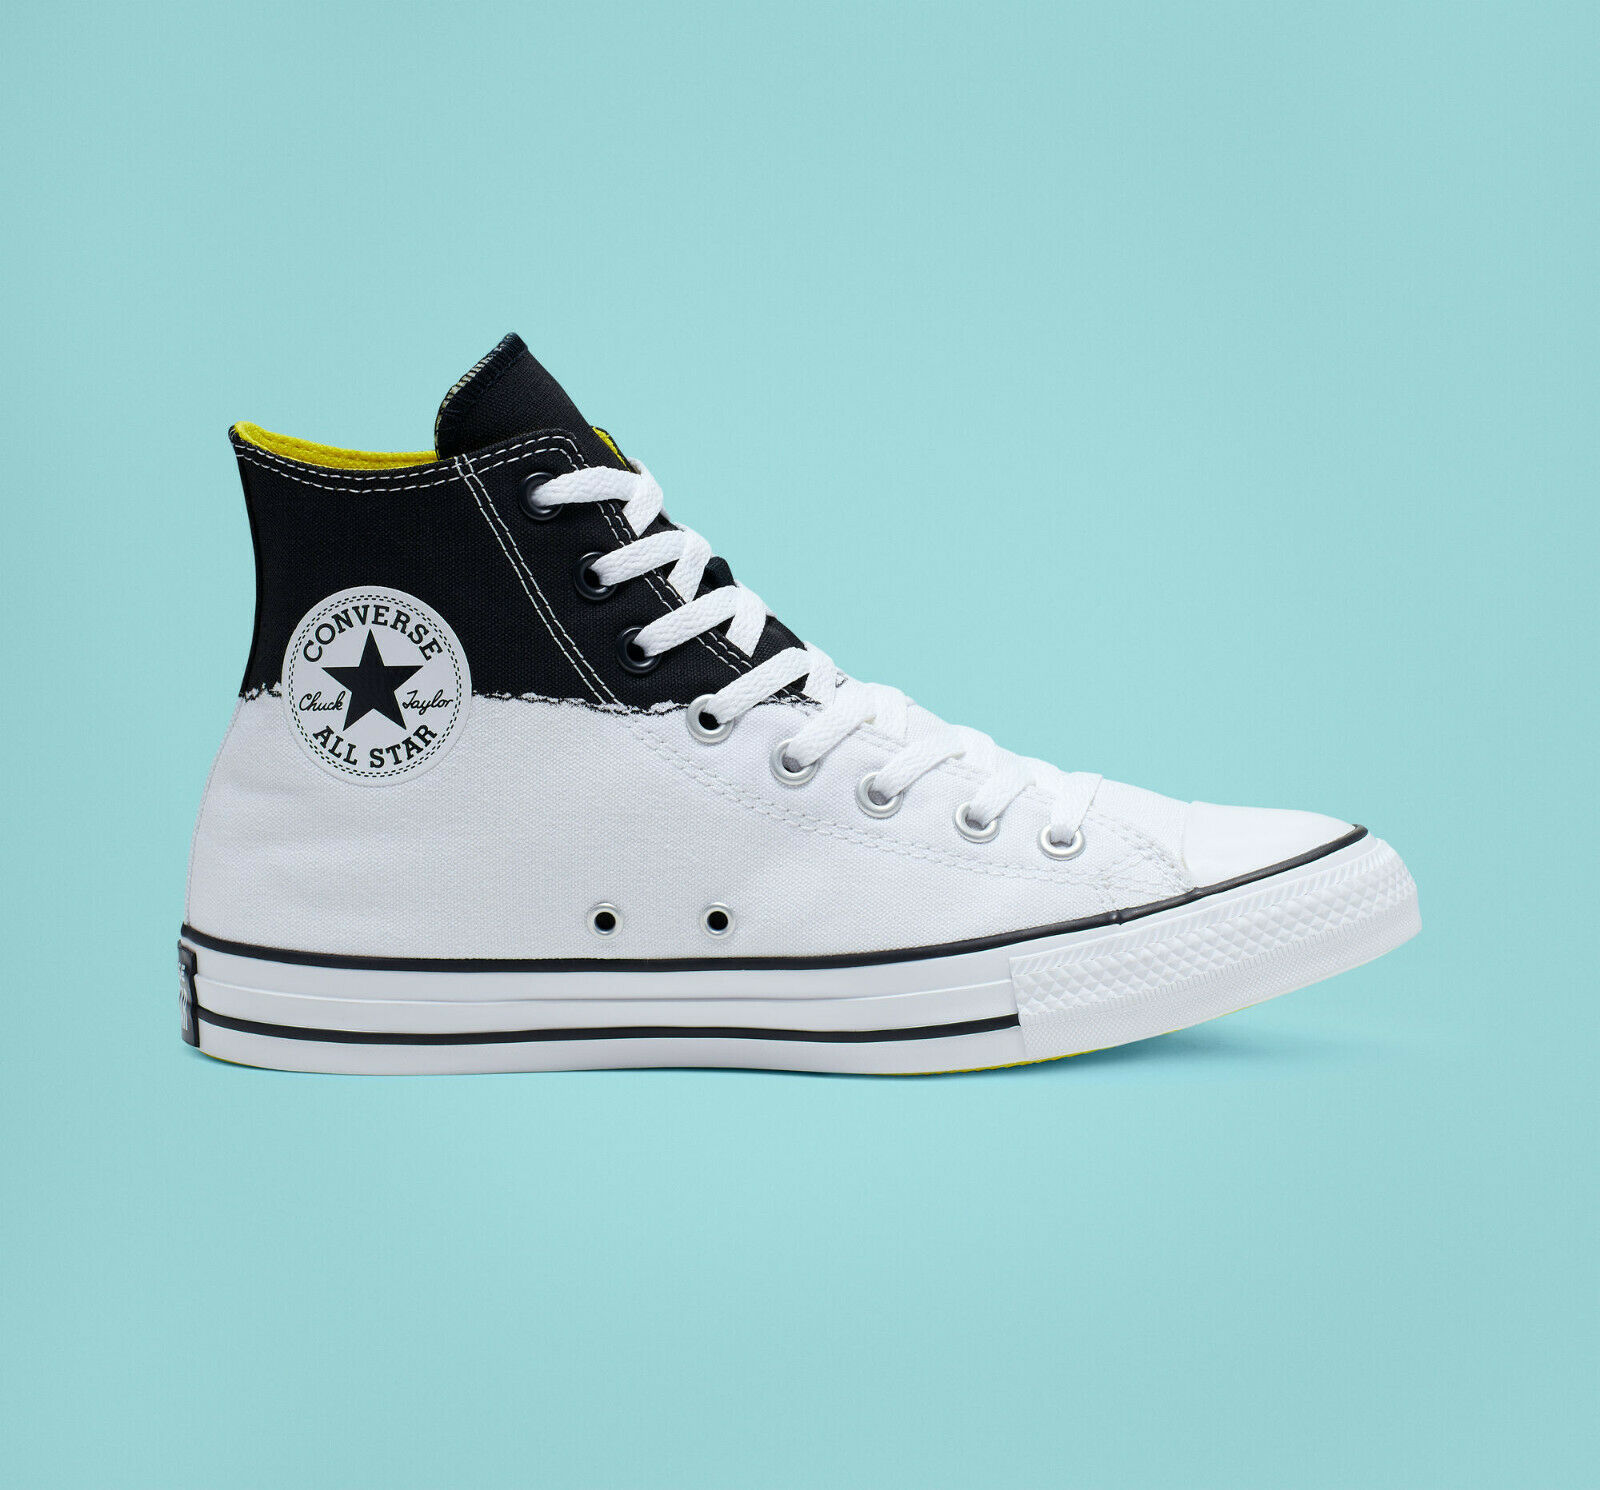 Converse Mens CTAS Hi I Stand For Canvas 165709C White/Black/Fresh Yellow Sz 10 image 2